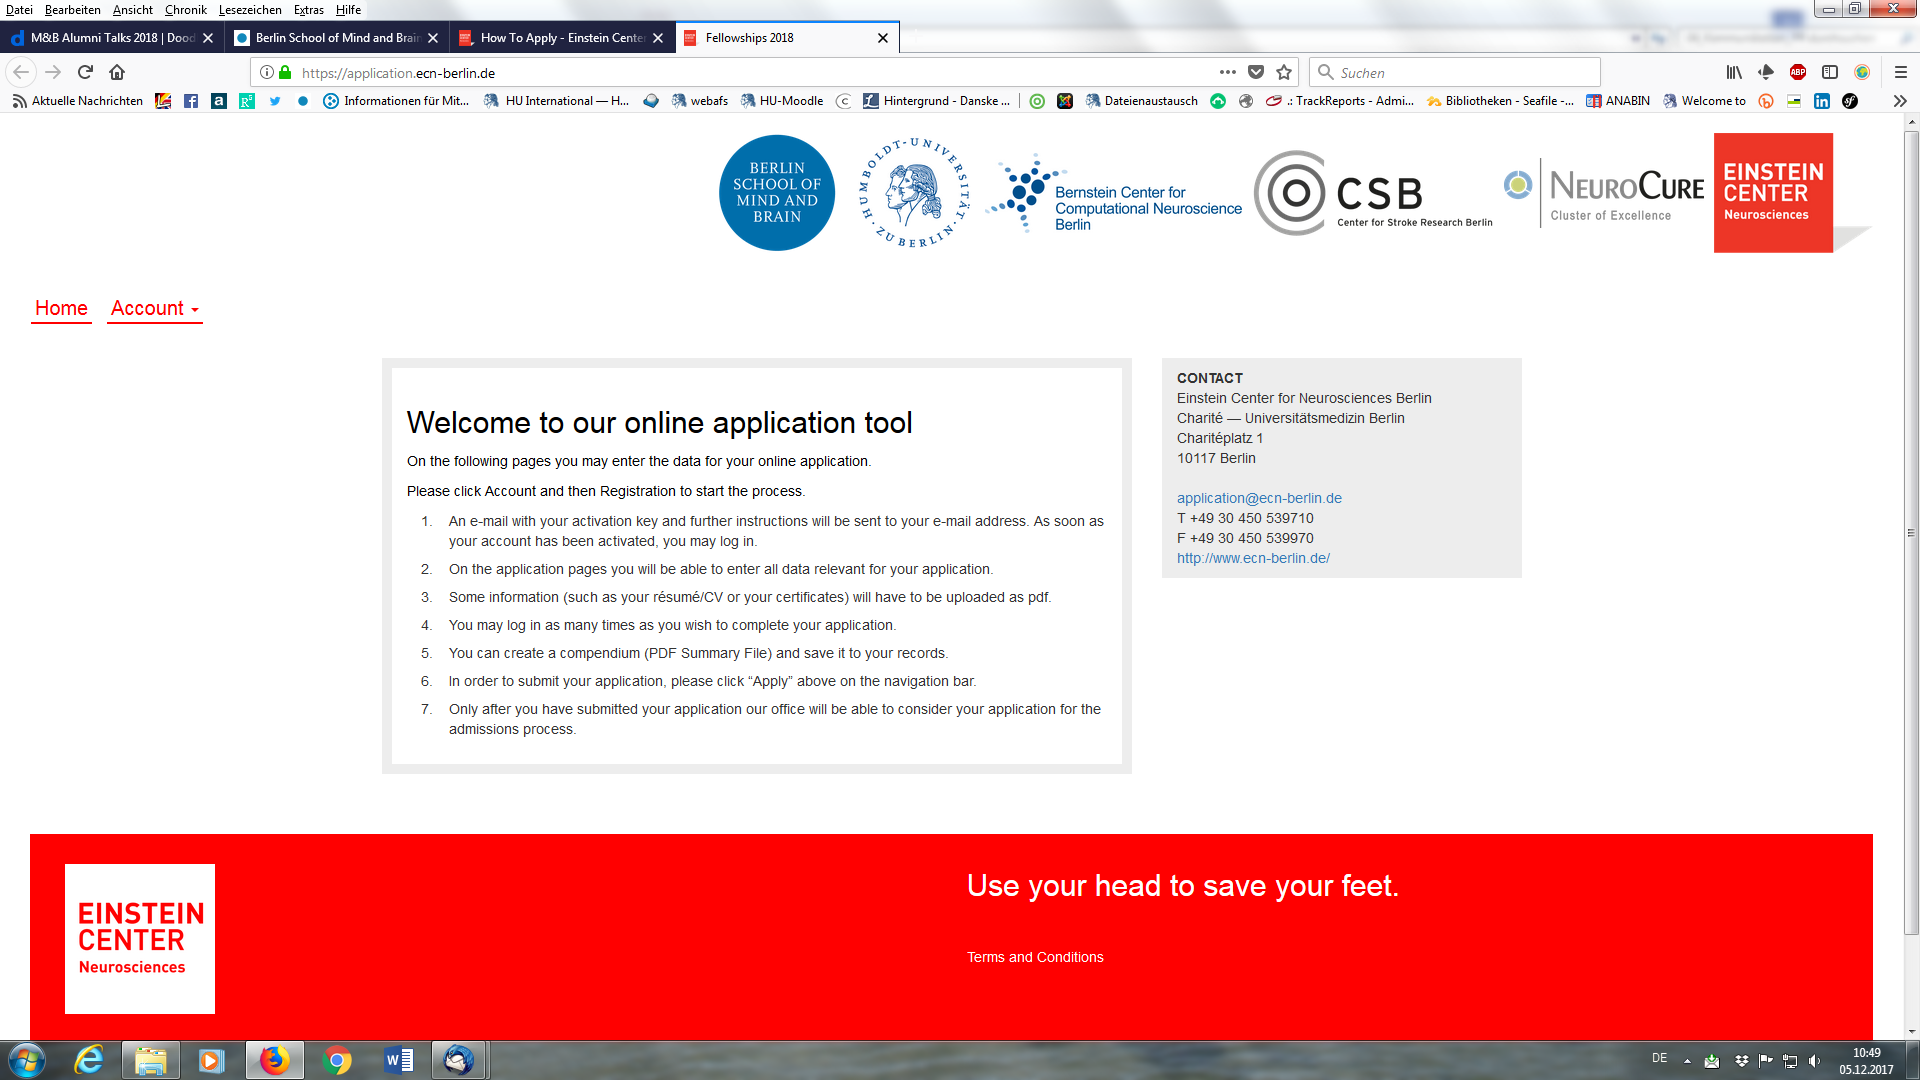 Berlin School of Mind and Brain: Online application